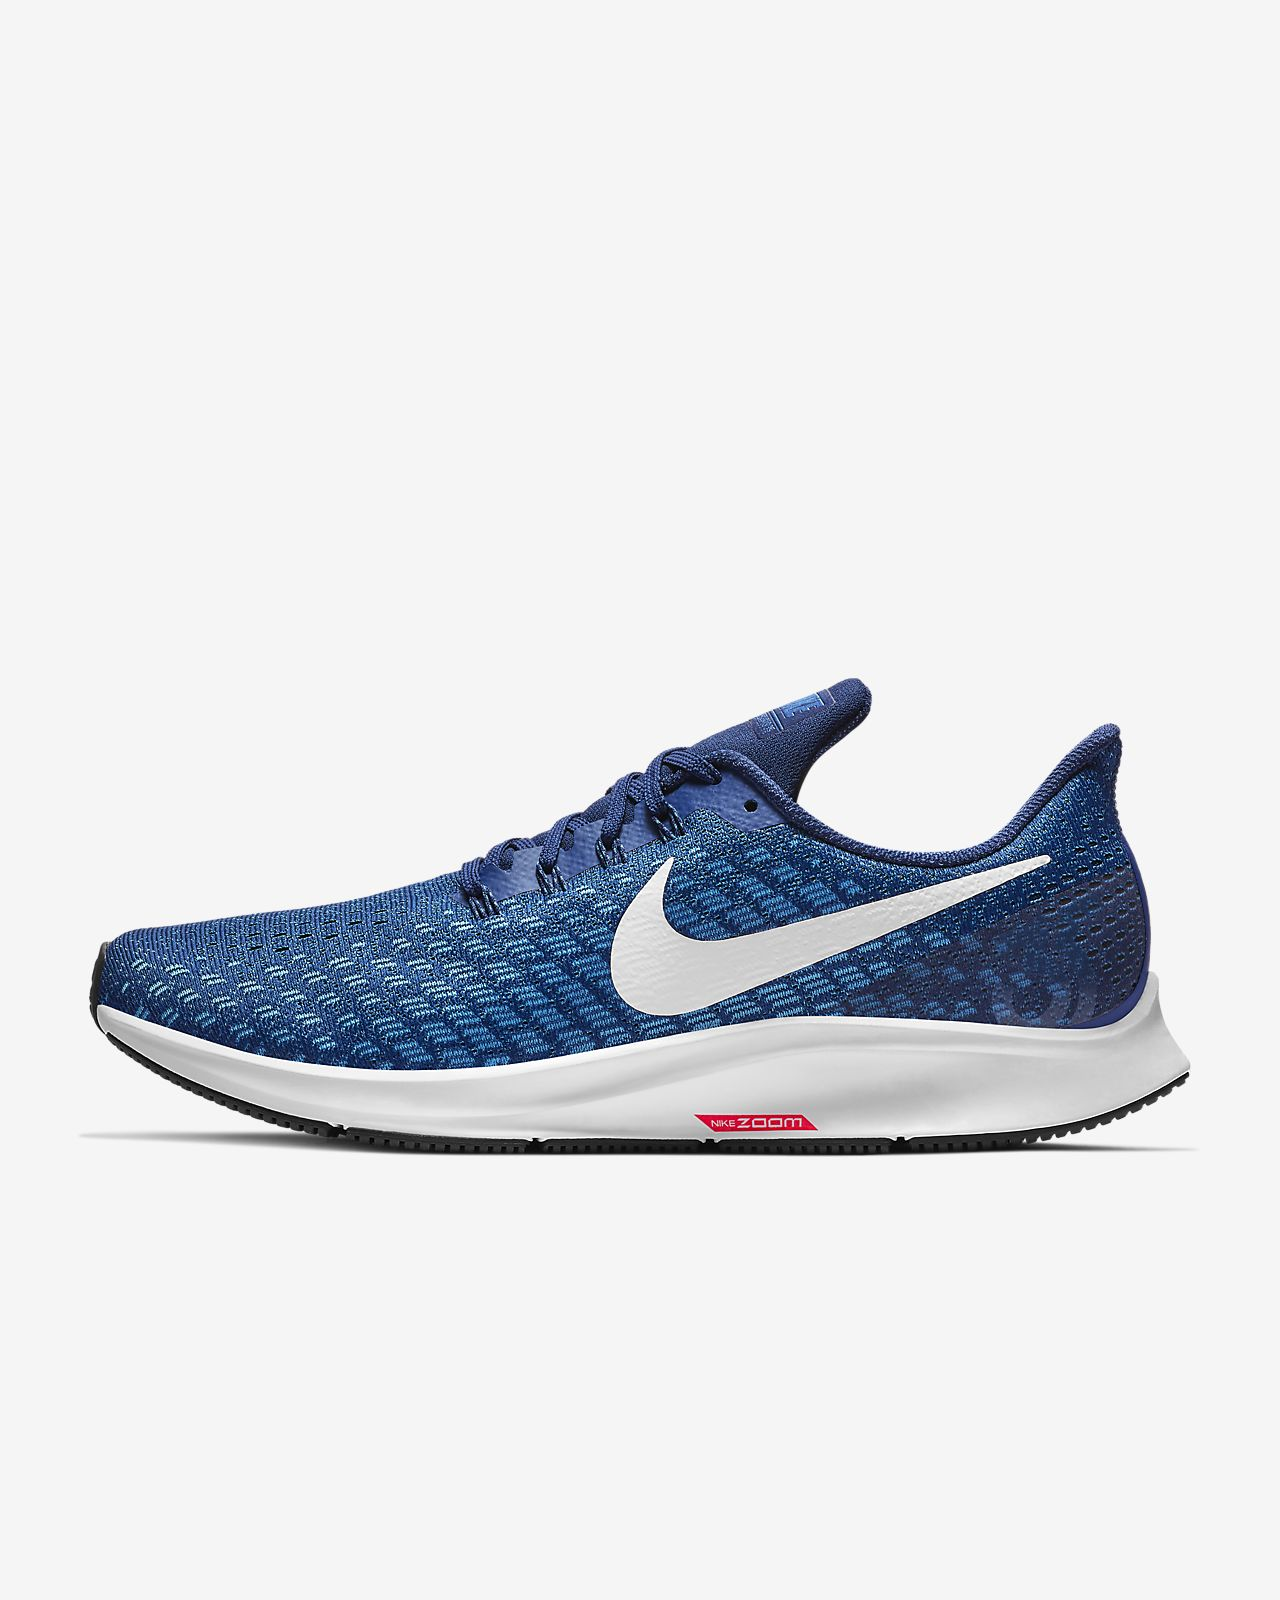 4386023f8 Nike Air Zoom Pegasus 35 Men s Running Shoe. Nike.com AU